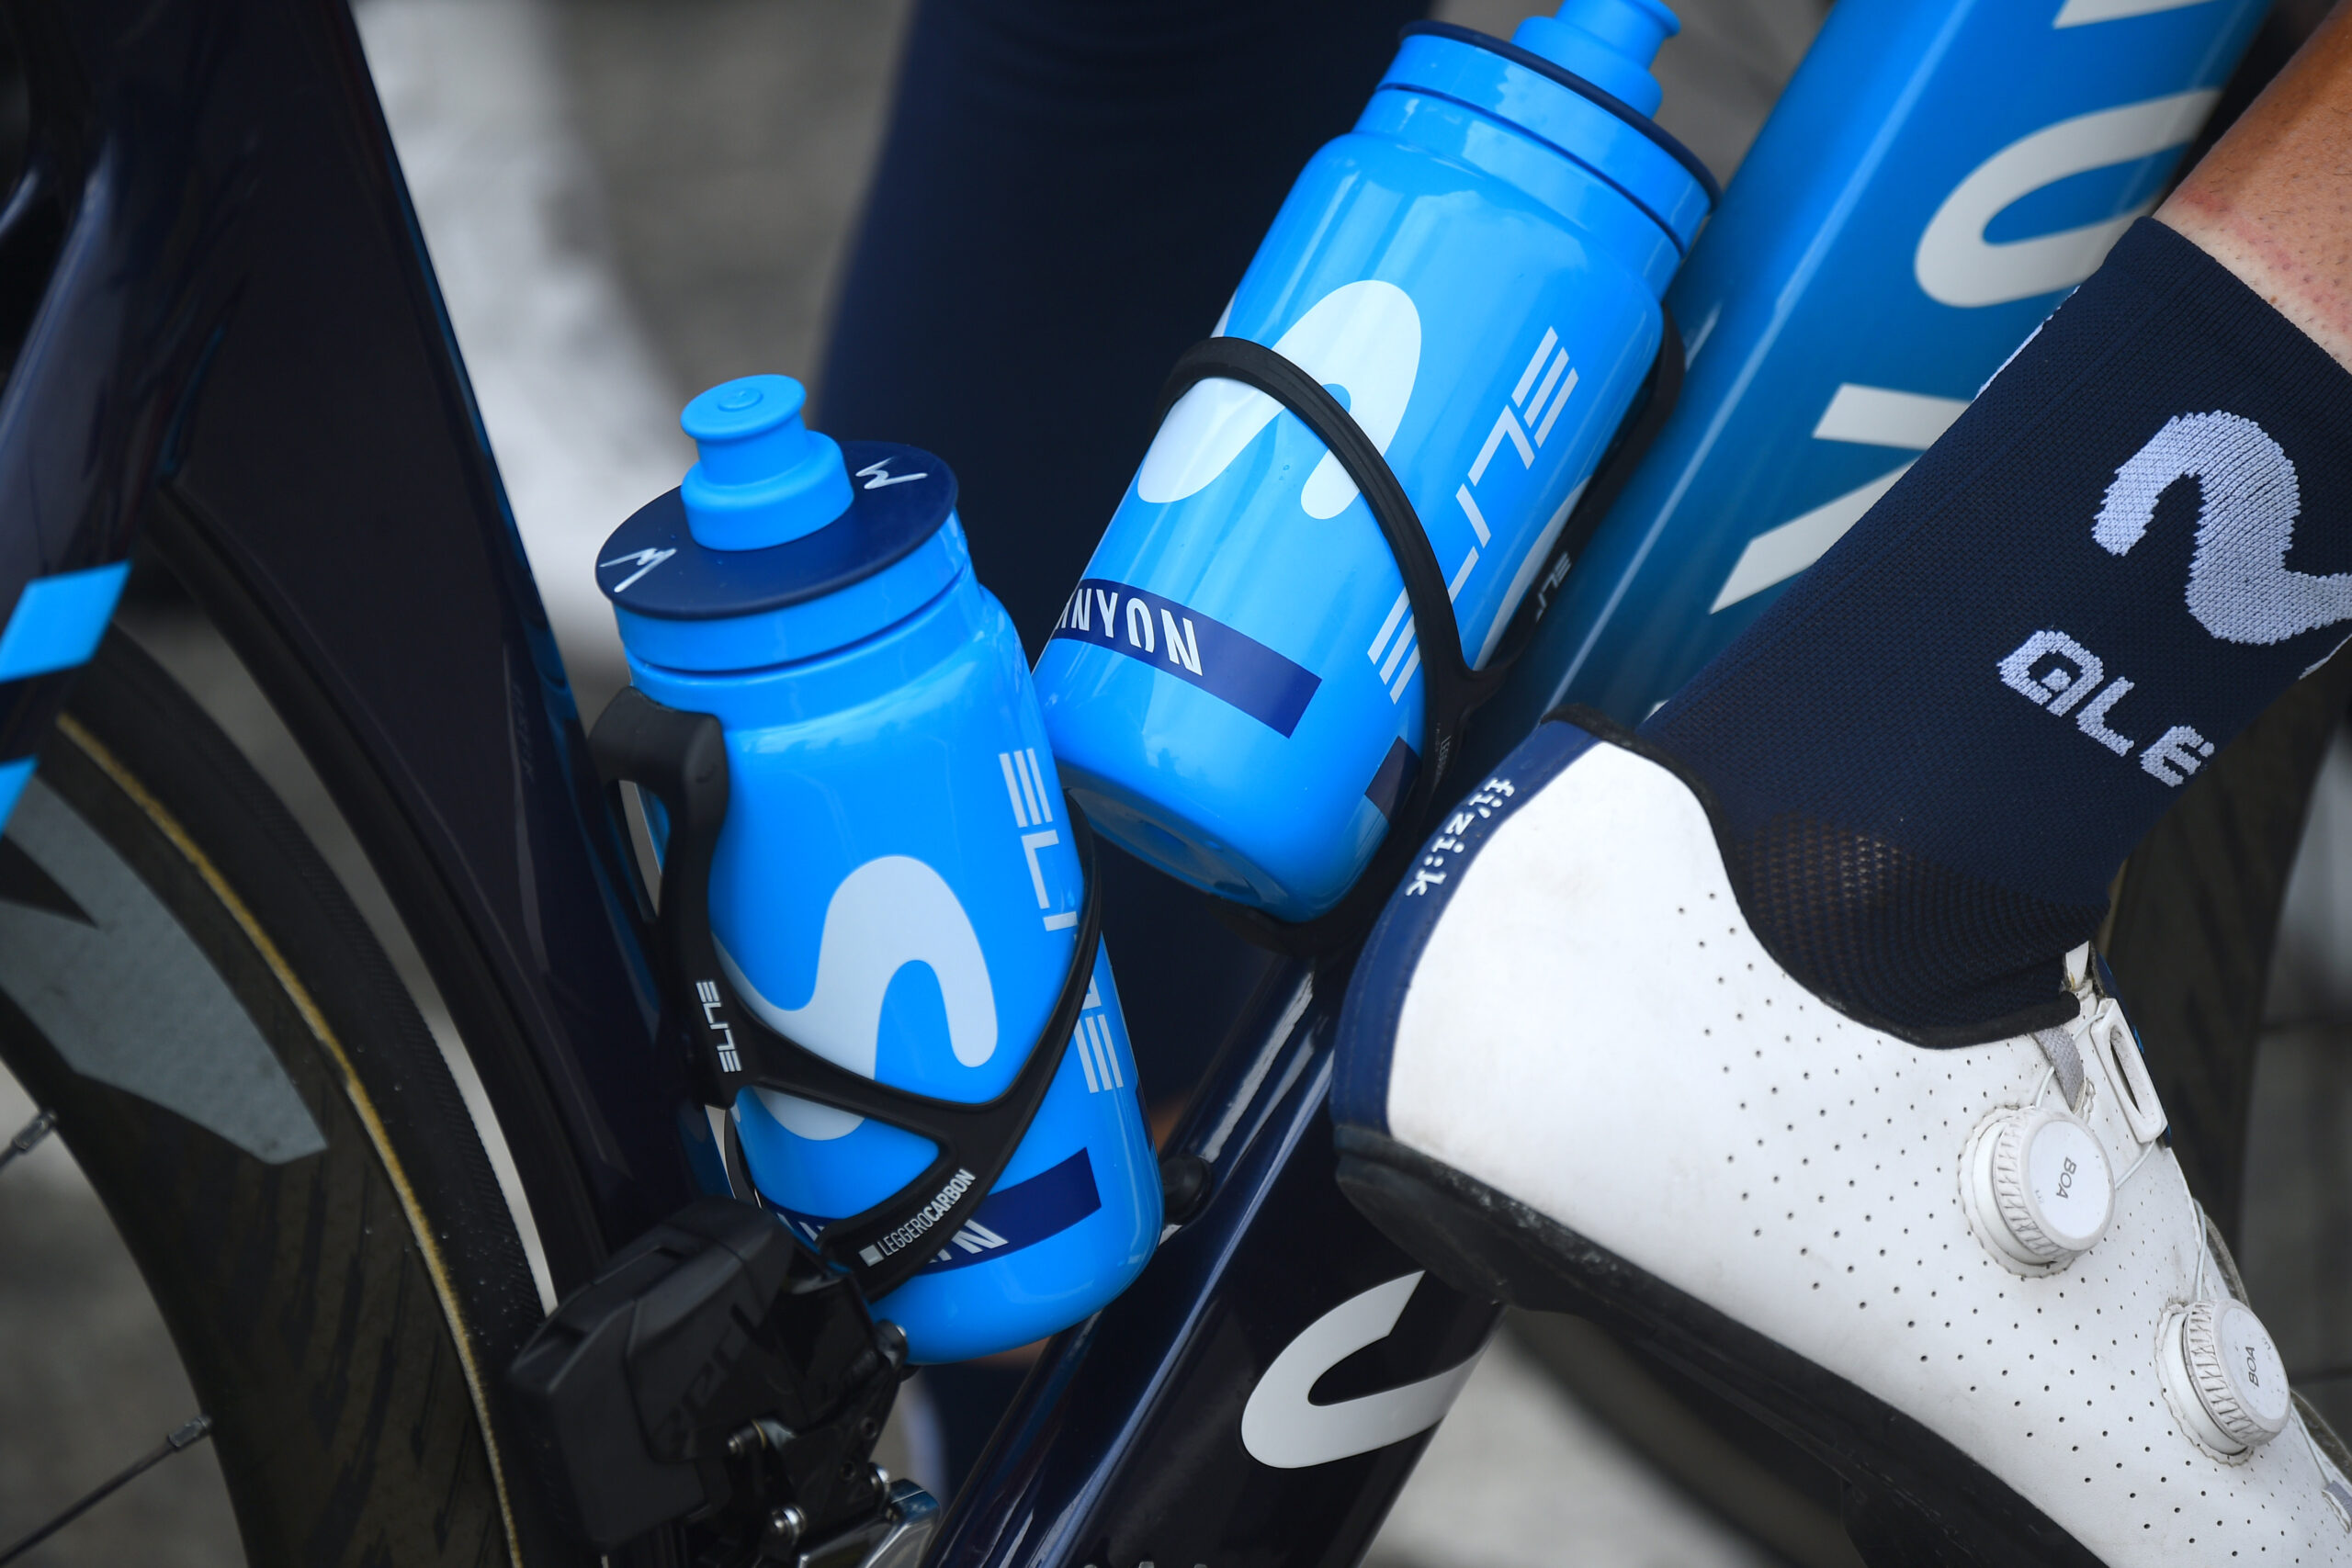 Team Movistar carbohydrates to refuel muscle glycogen stores